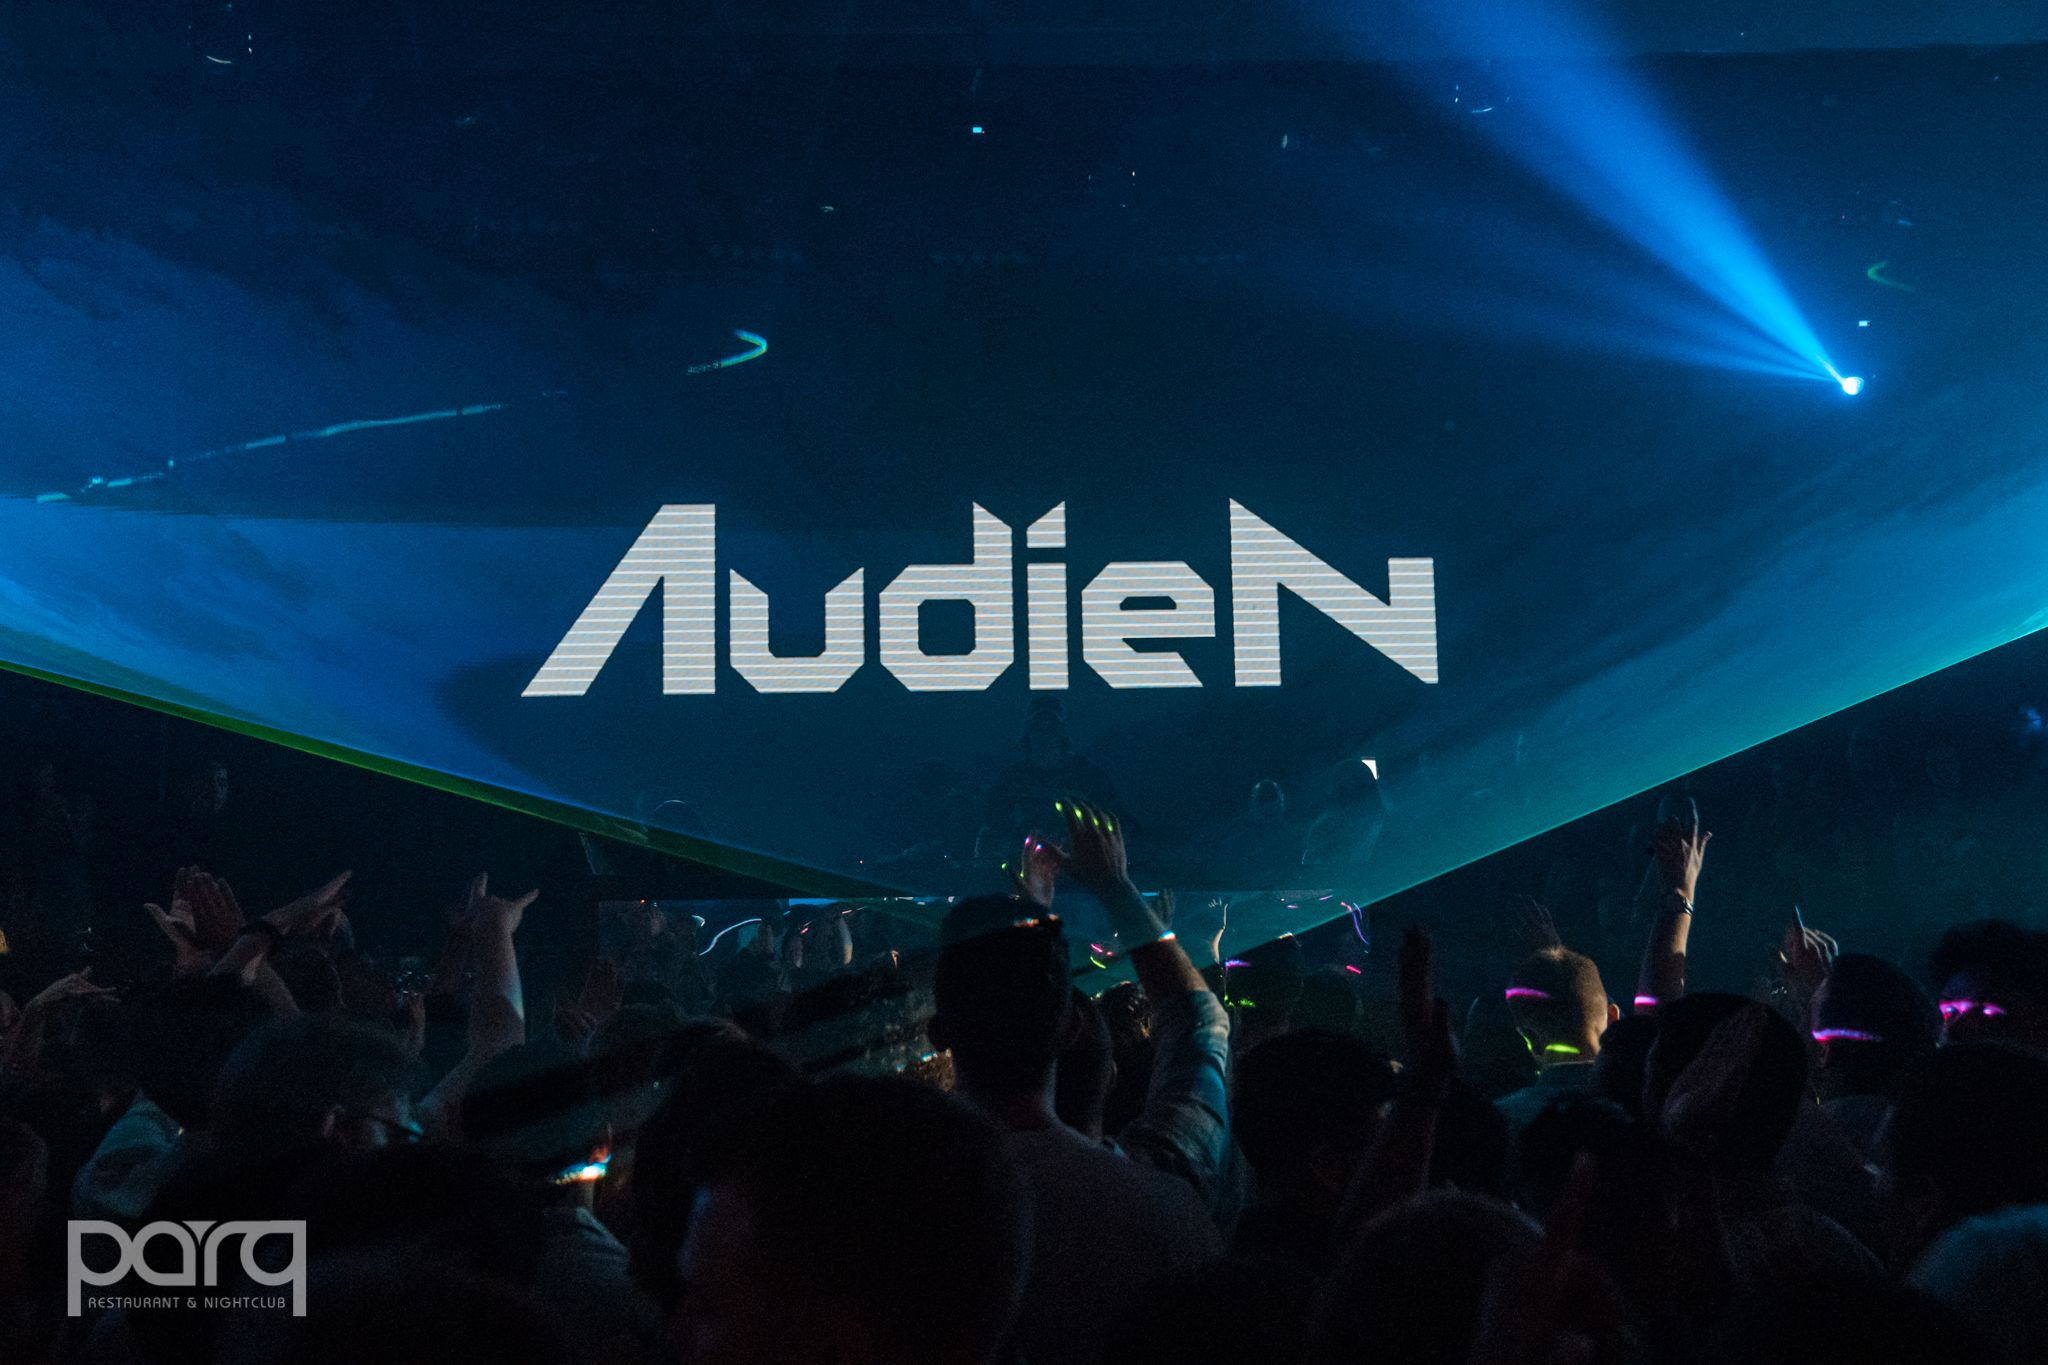 Audien Live Event Stage Projection